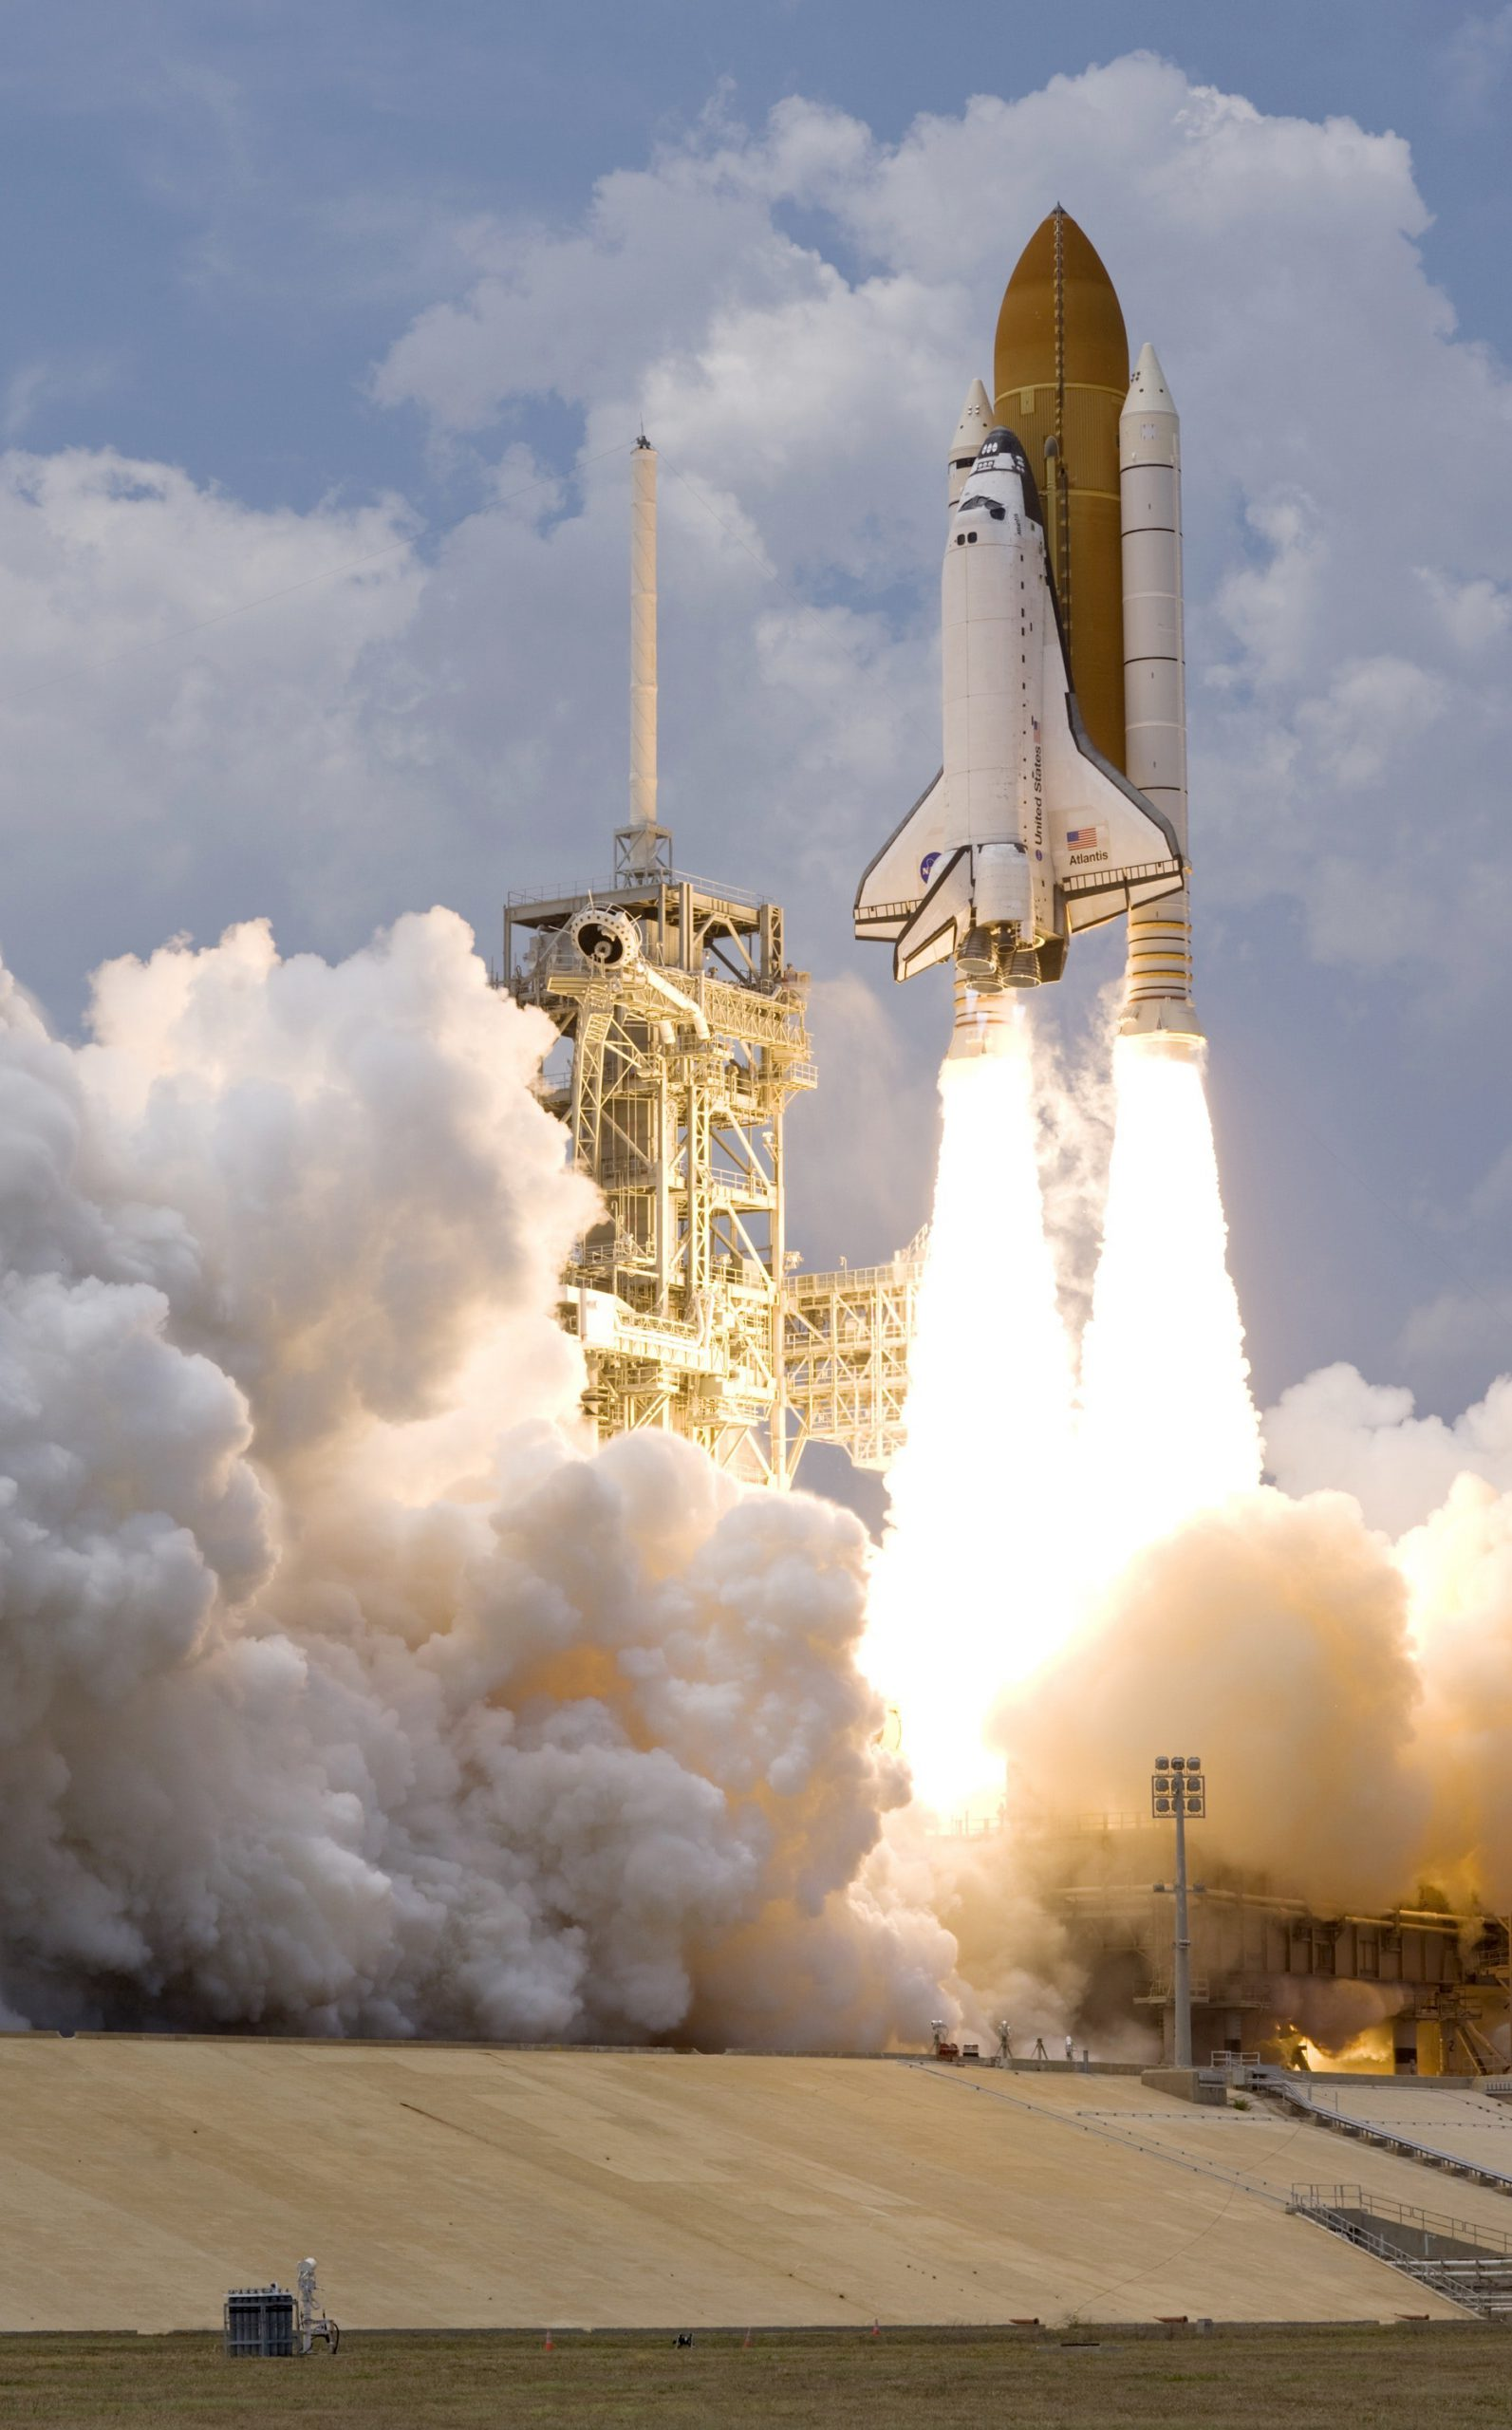 Speedy Space shuttle with boosters